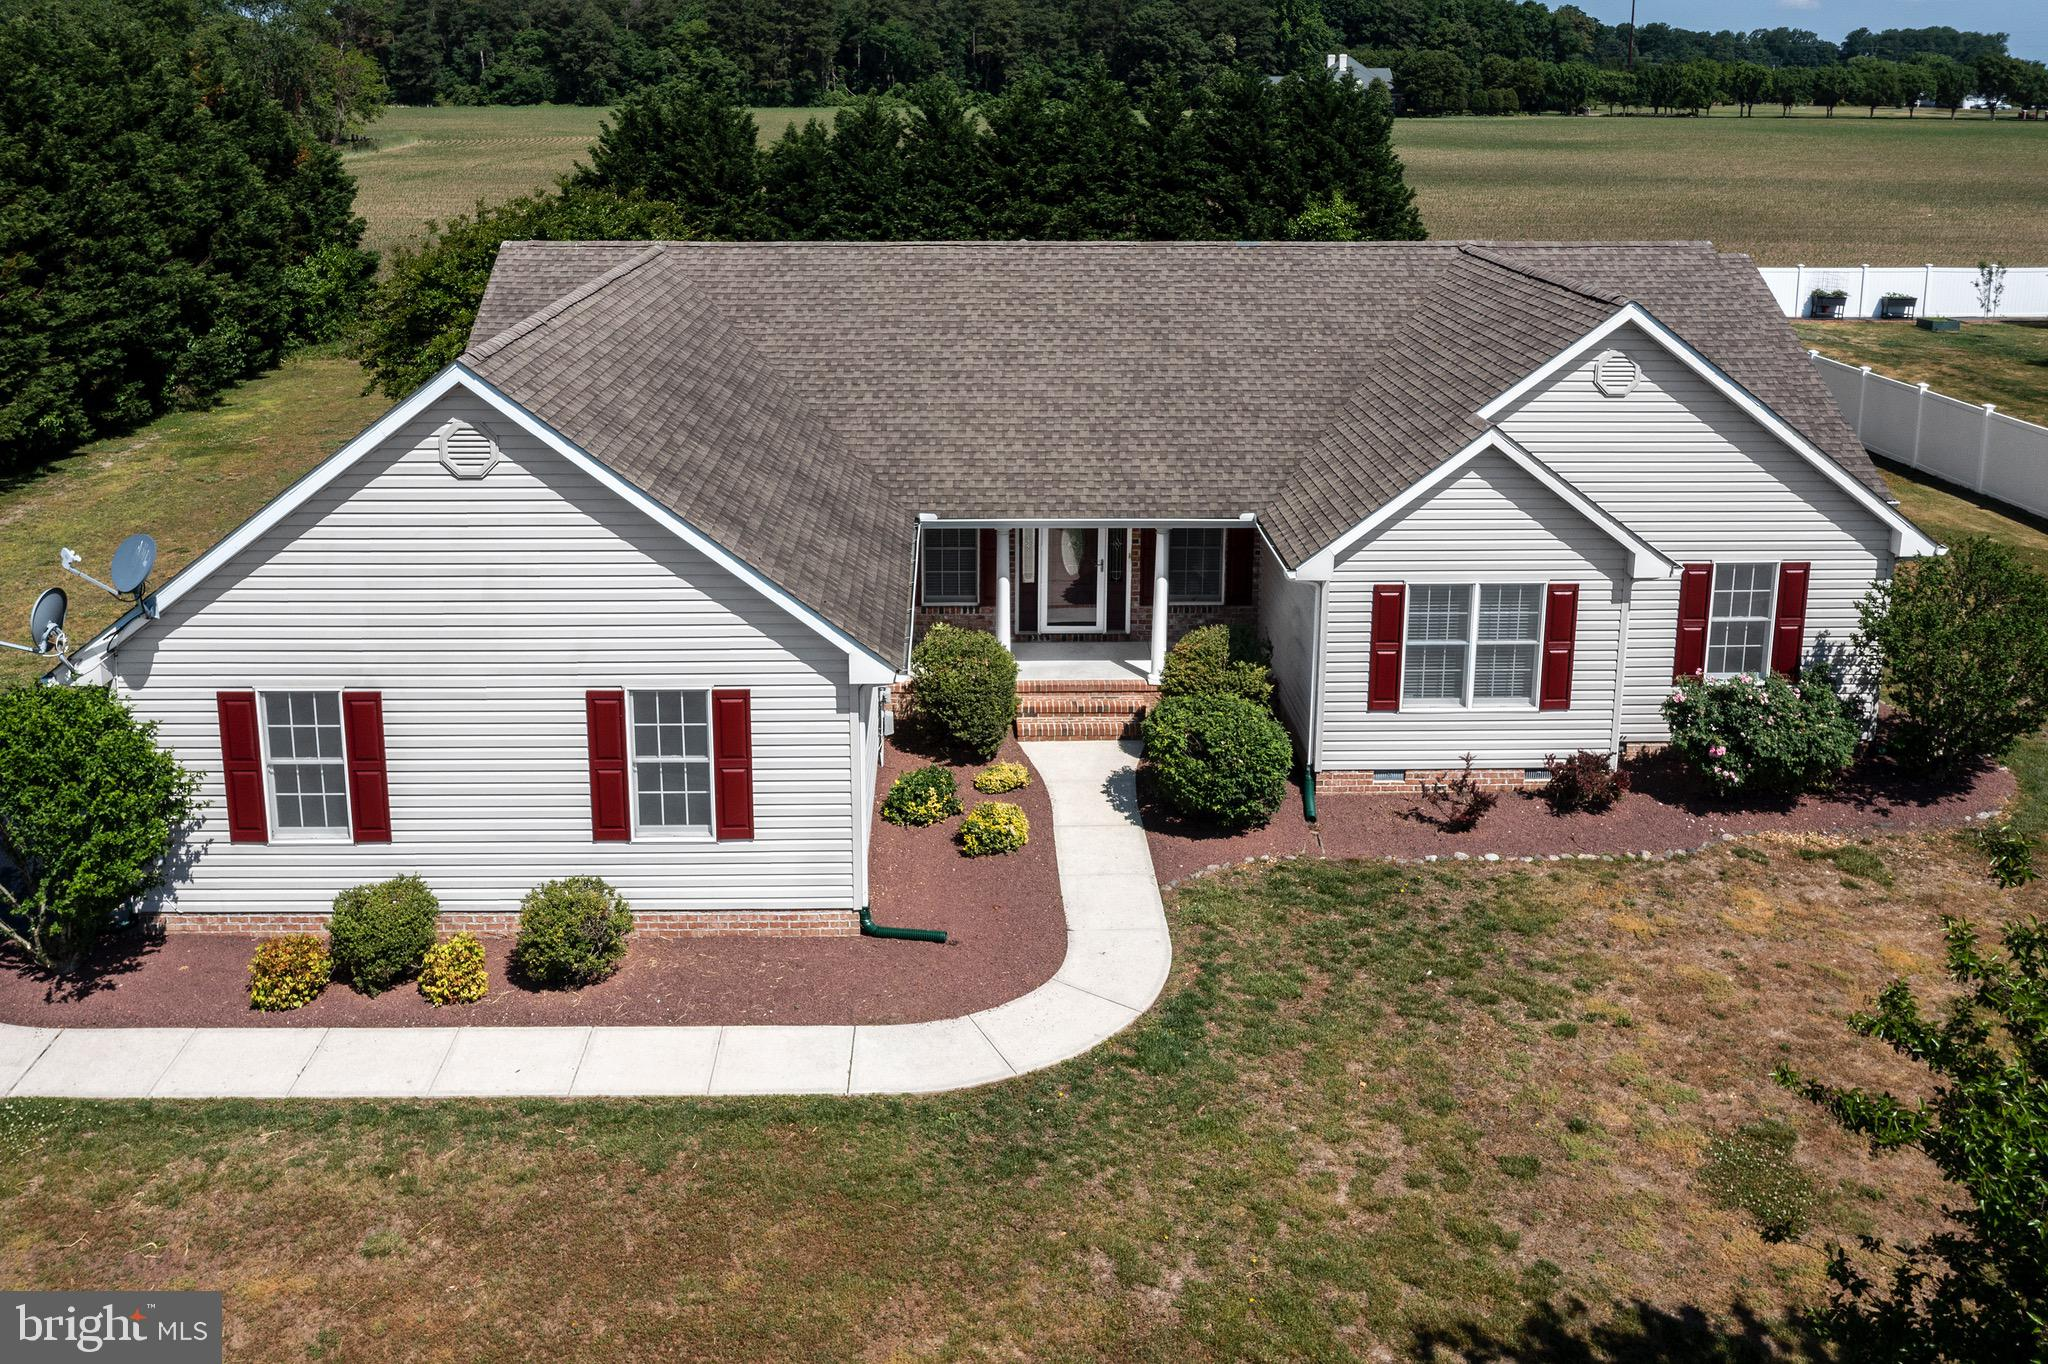 Custom built ranch home situated on a spacious 3/4 acre lot only 1 mile to the new Bayhealth Hospital! Enjoy the mature landscaping and outdoor private spaces to have a boat or RV to store or install an inground pool! Great property for enjoying outdoor entertainment and get togethers. There are no HOA fees to pay! Inside you will find a modern kitchen with open floor plan concept.  The split floor plan offers privacy from the guest bedroom. The owners suite offers a luxury bath with a huge walk-in closet with lots of natural light. Off the great room is a large 3 season room that can be enjoyed all year around. Open all the windows and its like having a screened in porch.  There is a patio off the 3 season room for BBQ and additional seating. If you are looking for storage, this home has pull down stairs to a huge storage room over the garage. The oversized 2 car garage is also ideal for additional storage or that workshop you have always wanted.  This home is move in ready along with fresh paint! The location is ideal just off coastal highway. You are a short ride to the Lewes and Rehoboth Beaches and also the Dover Air Force Base.